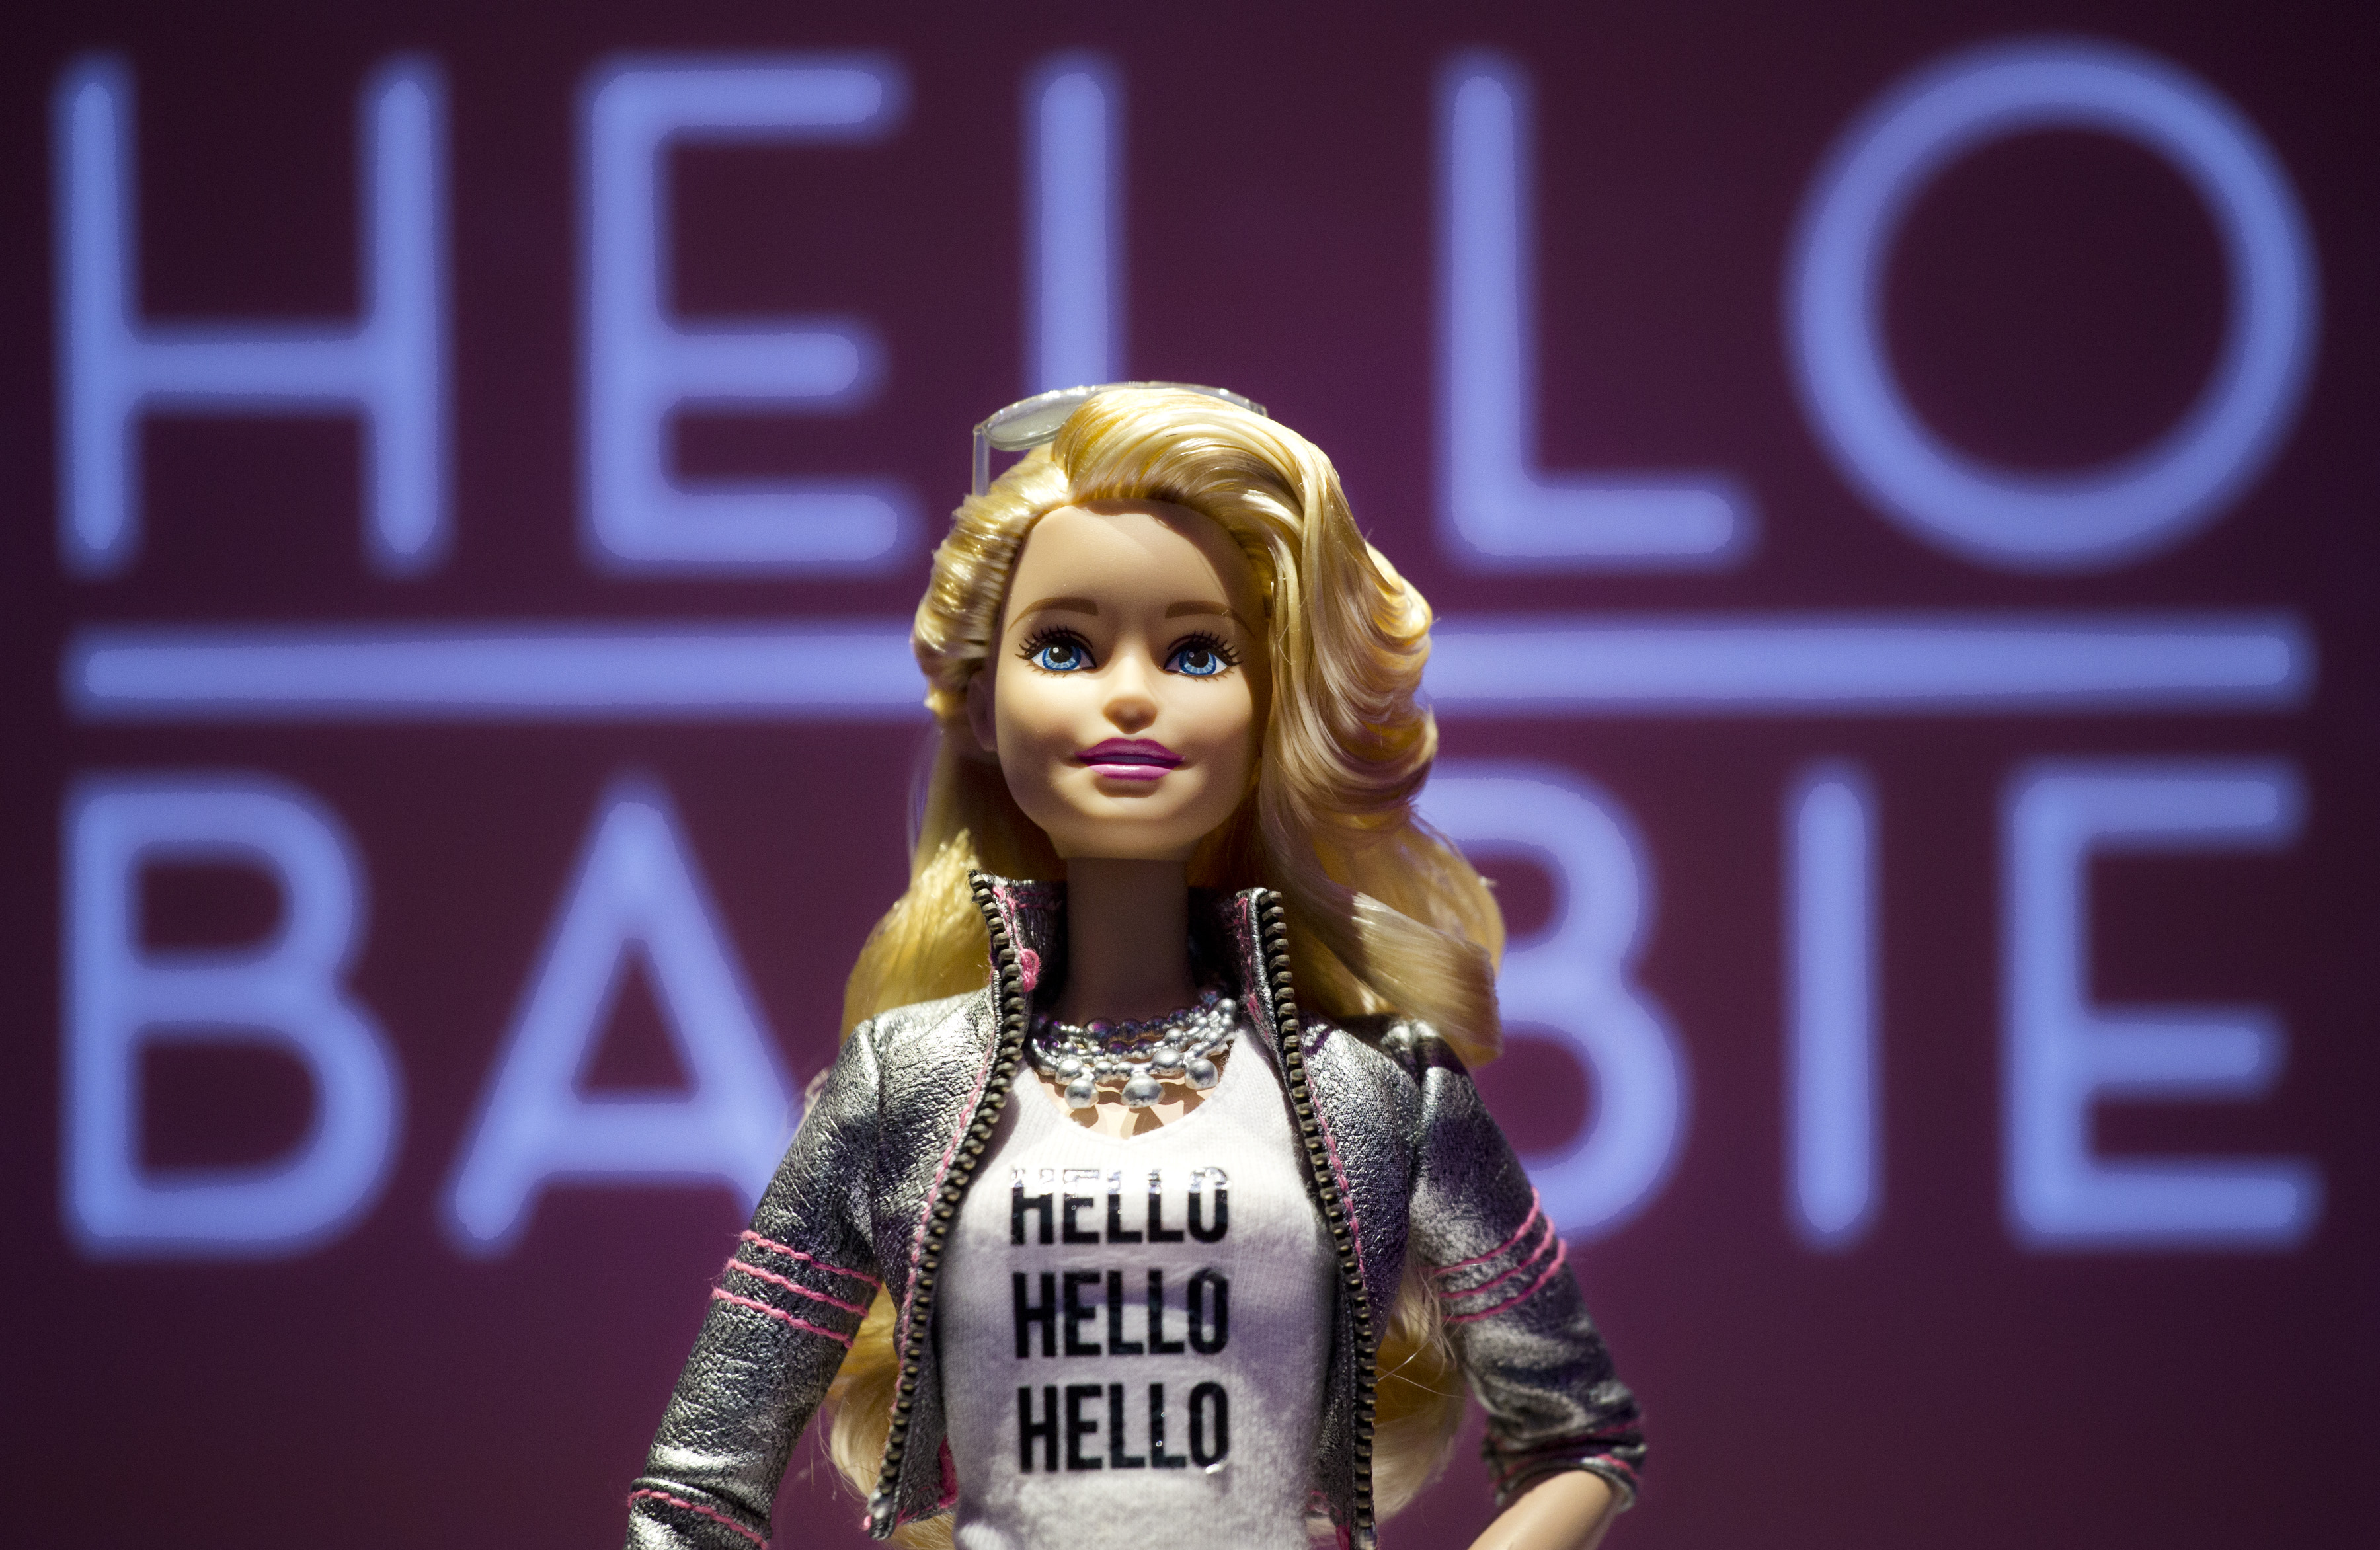 Hello Barbie is displayed at the Mattel showroom in New York City on Feb. 14, 2015.